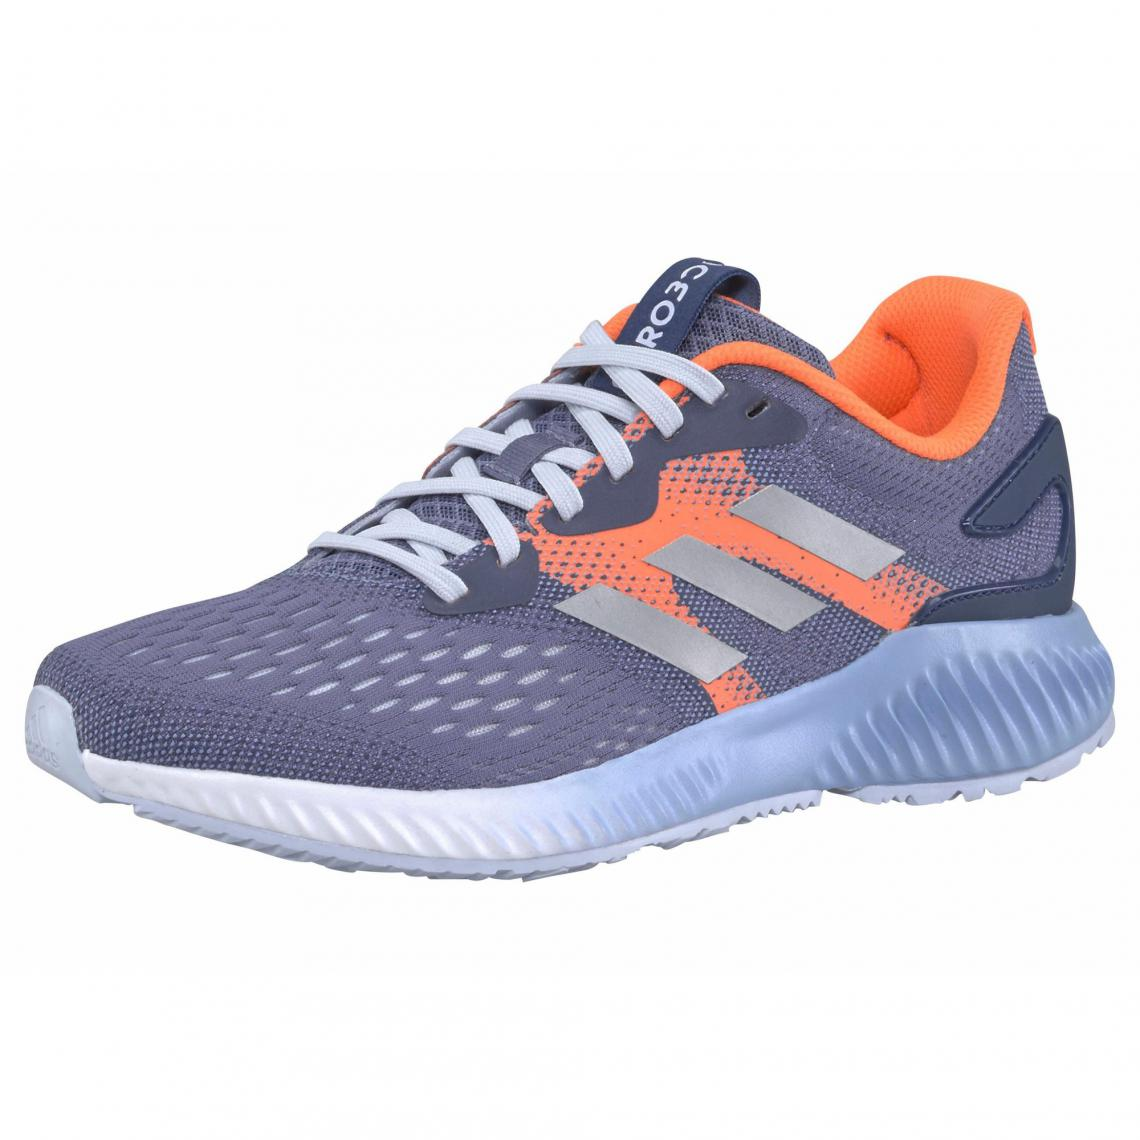 reputable site 3fcc0 eeb97 adidas Performance Aerobounce chaussures de running femme - Gris - Orange  Adidas Performance Femme